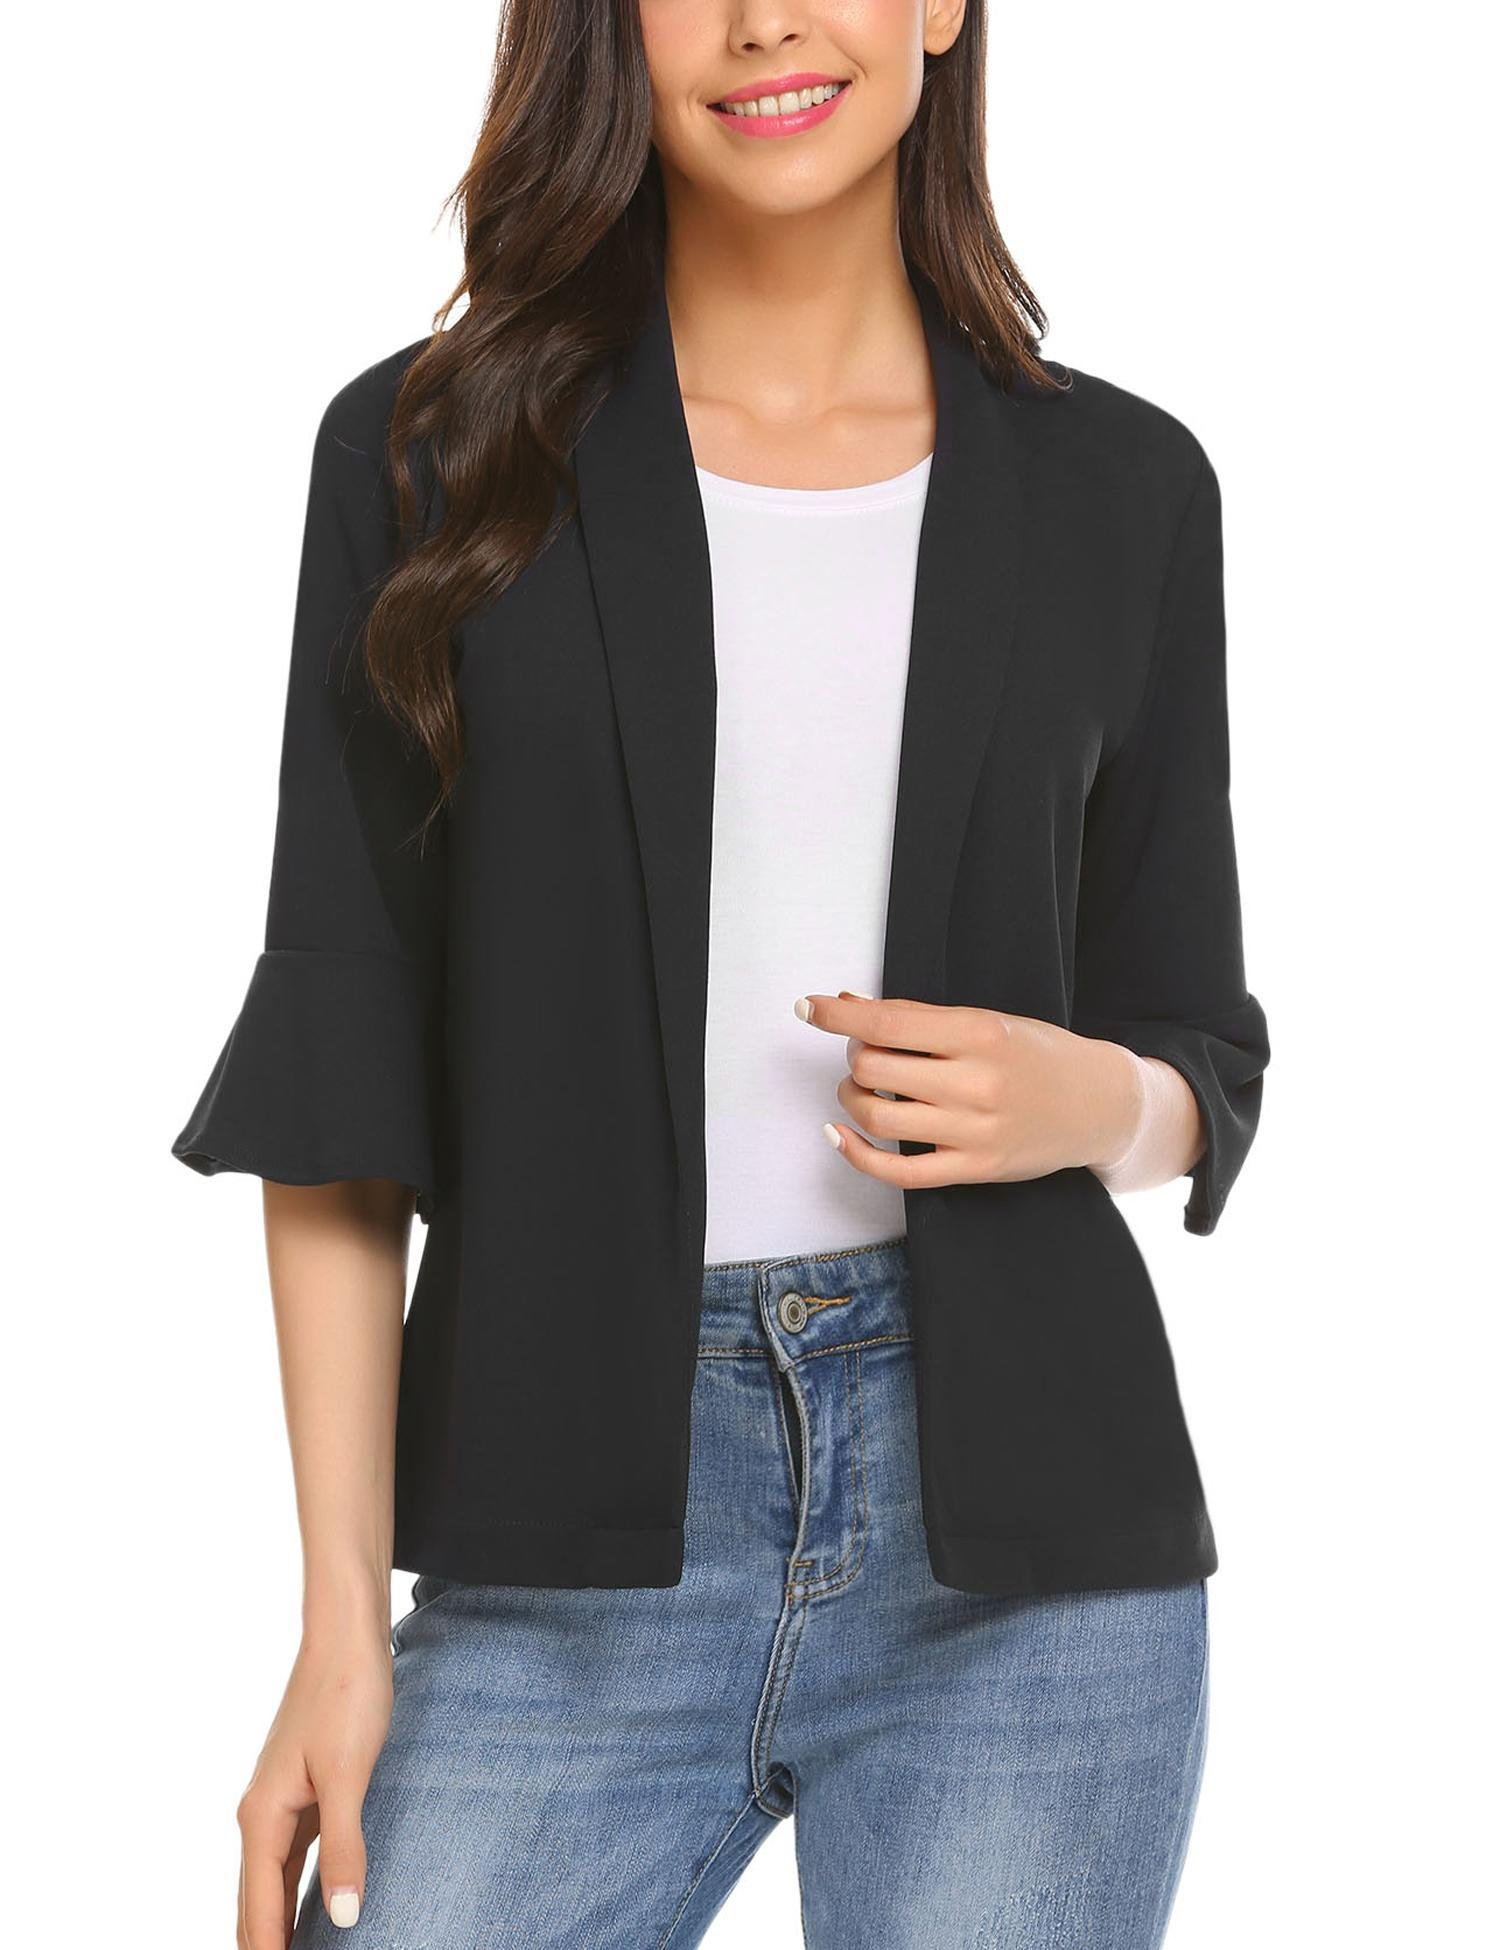 comfi1 Womens Casual Open Front Work Office Jackets V-Neck Flare 3/4 Sleeve Solid Blazer